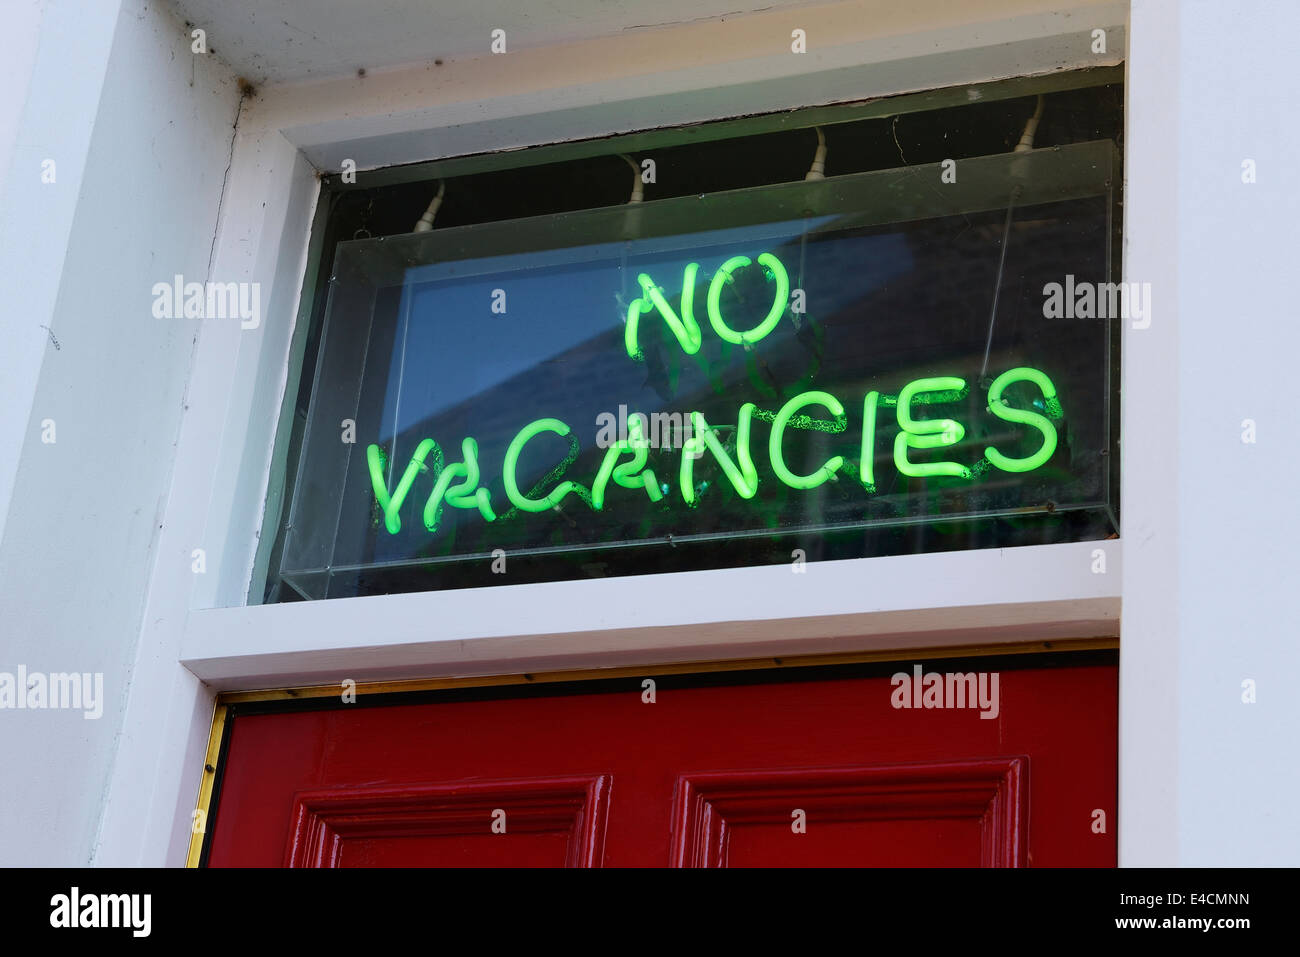 No Vacancies green neon sign - Stock Image